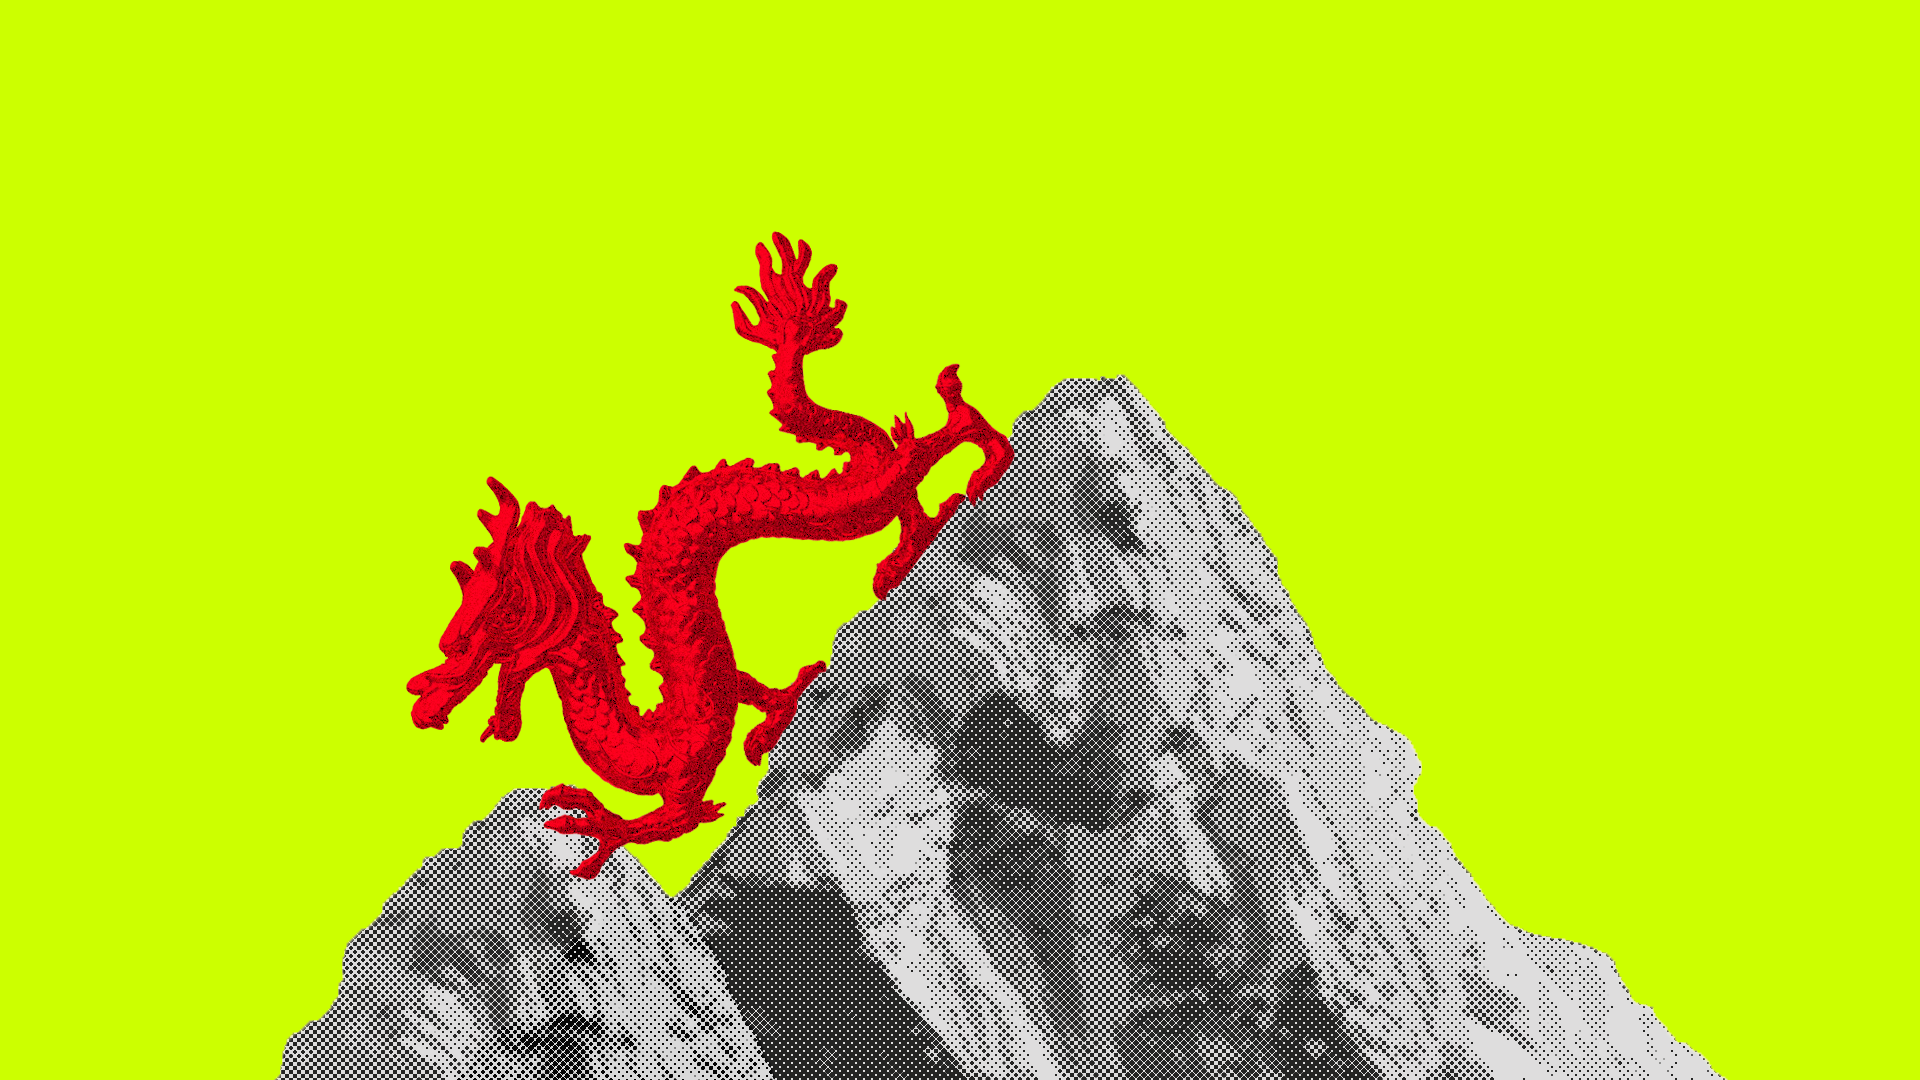 Chinese dragon walking over India